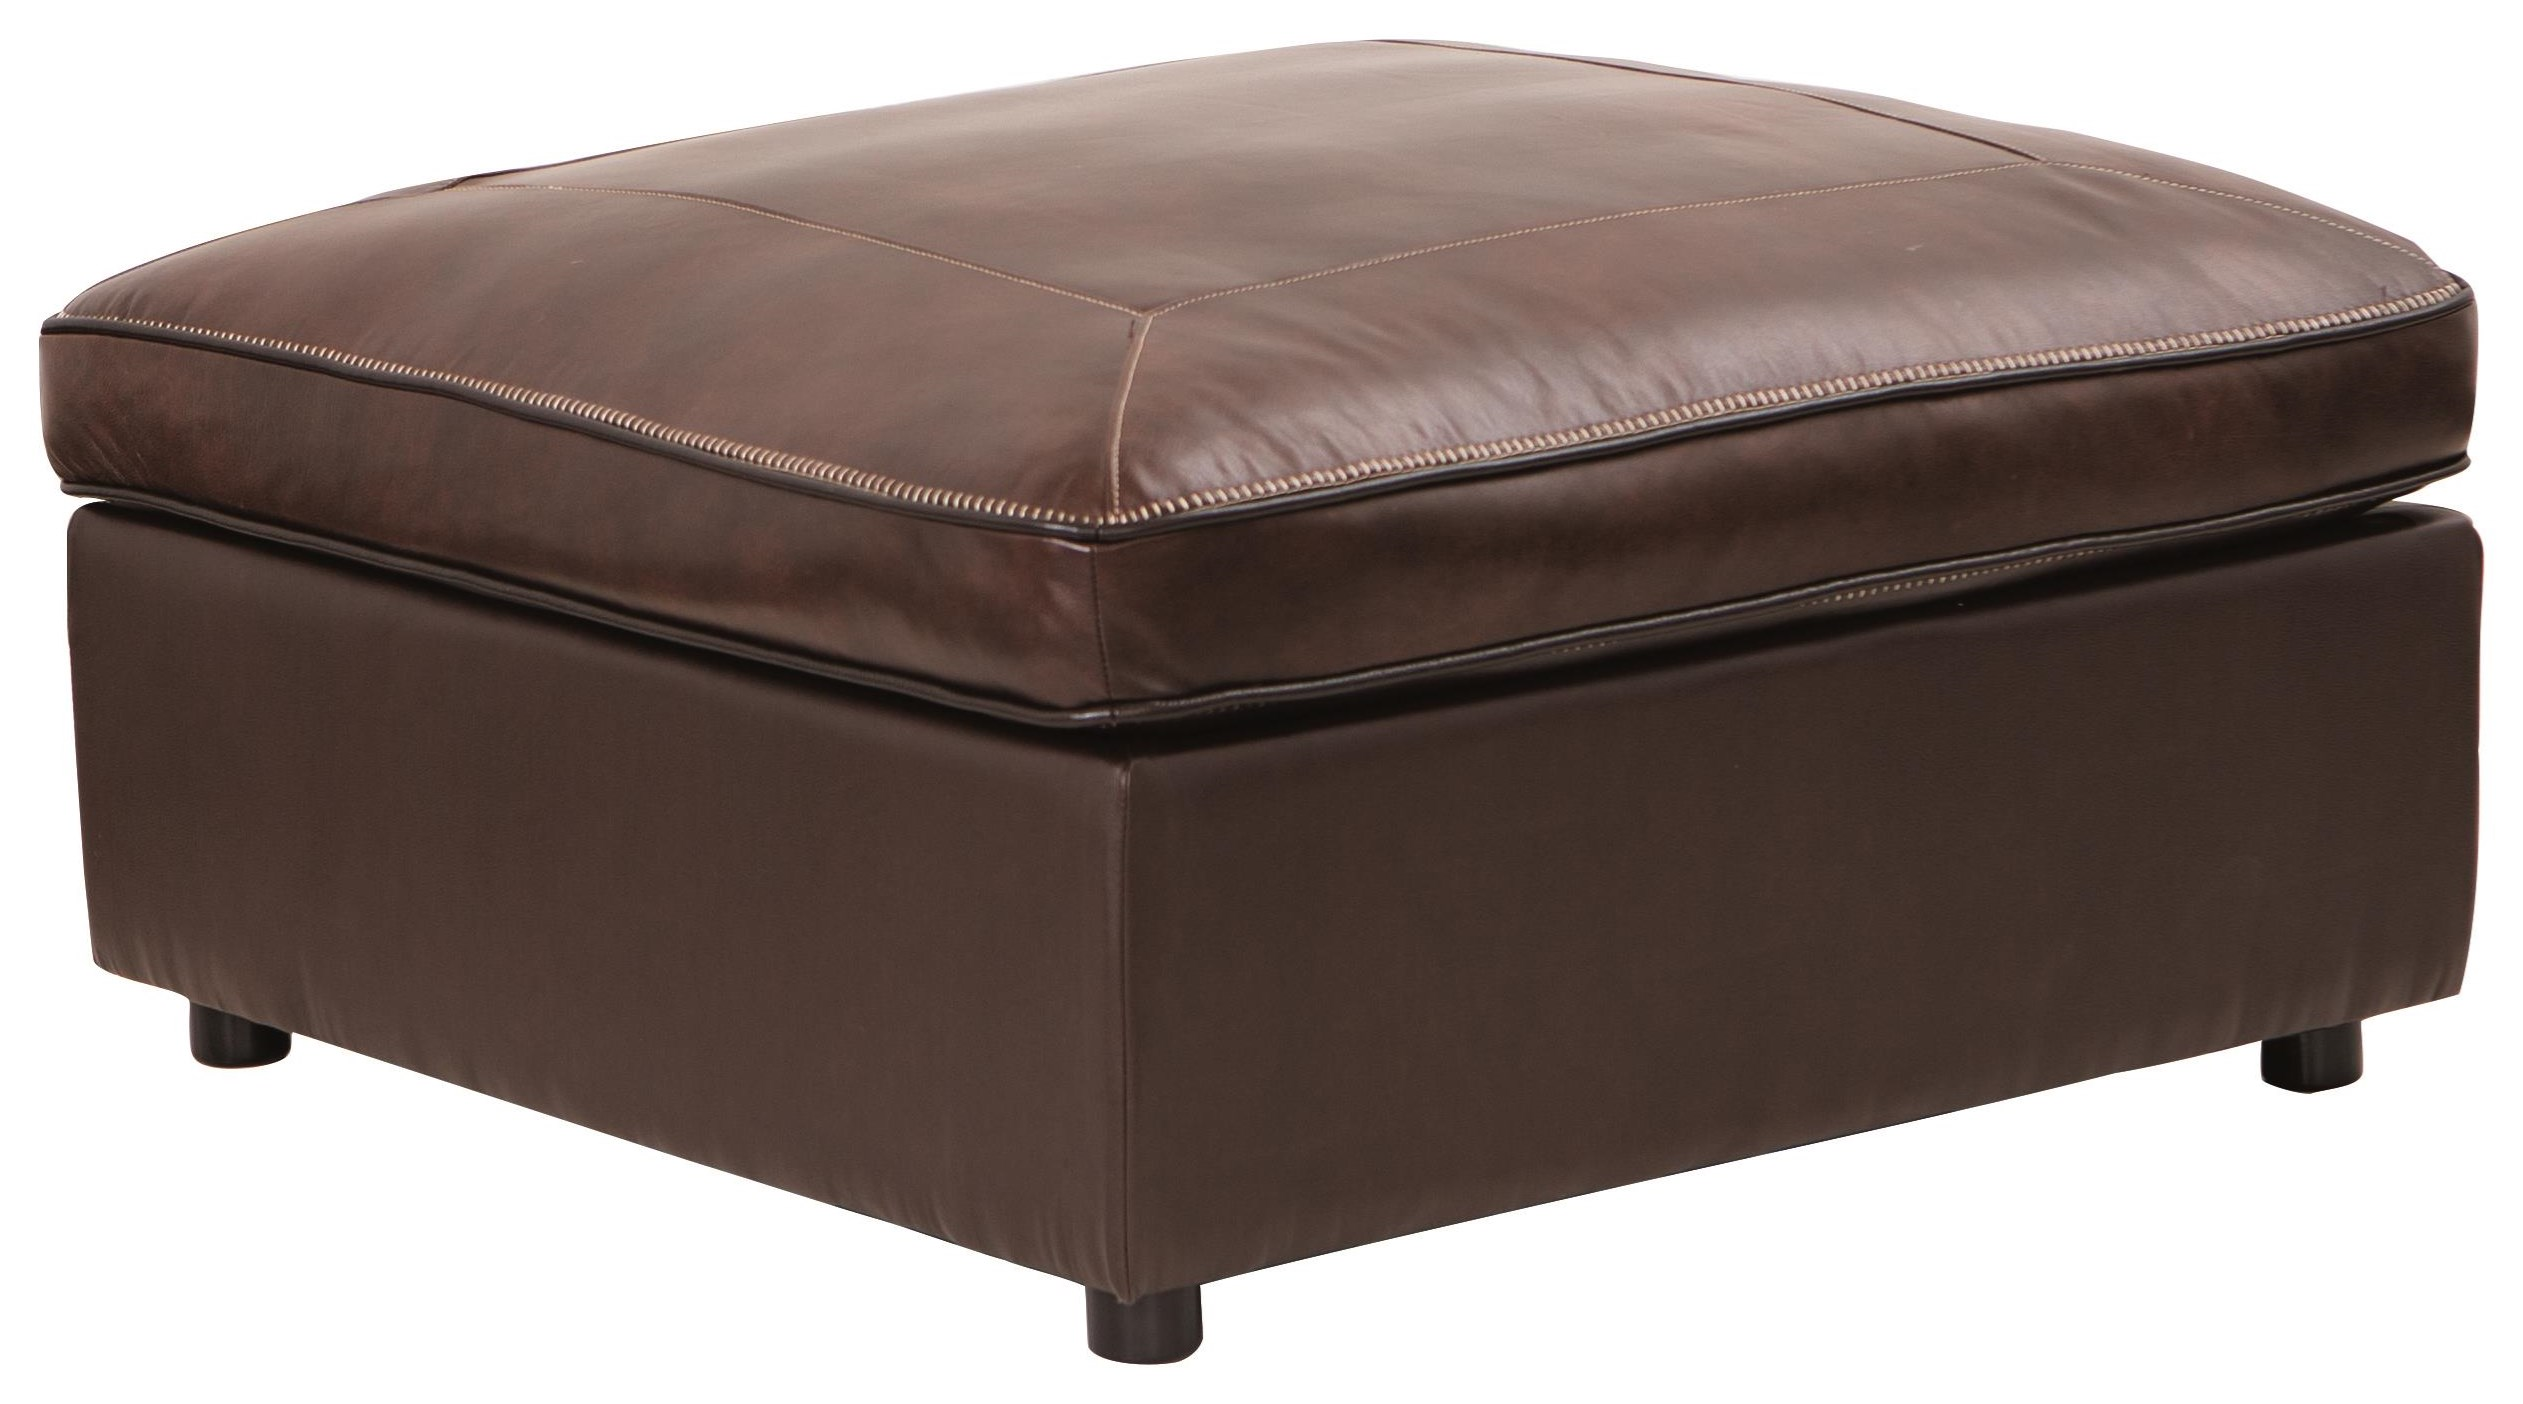 1570 Cocktail Ottoman by H317 Logistics at Darvin Furniture